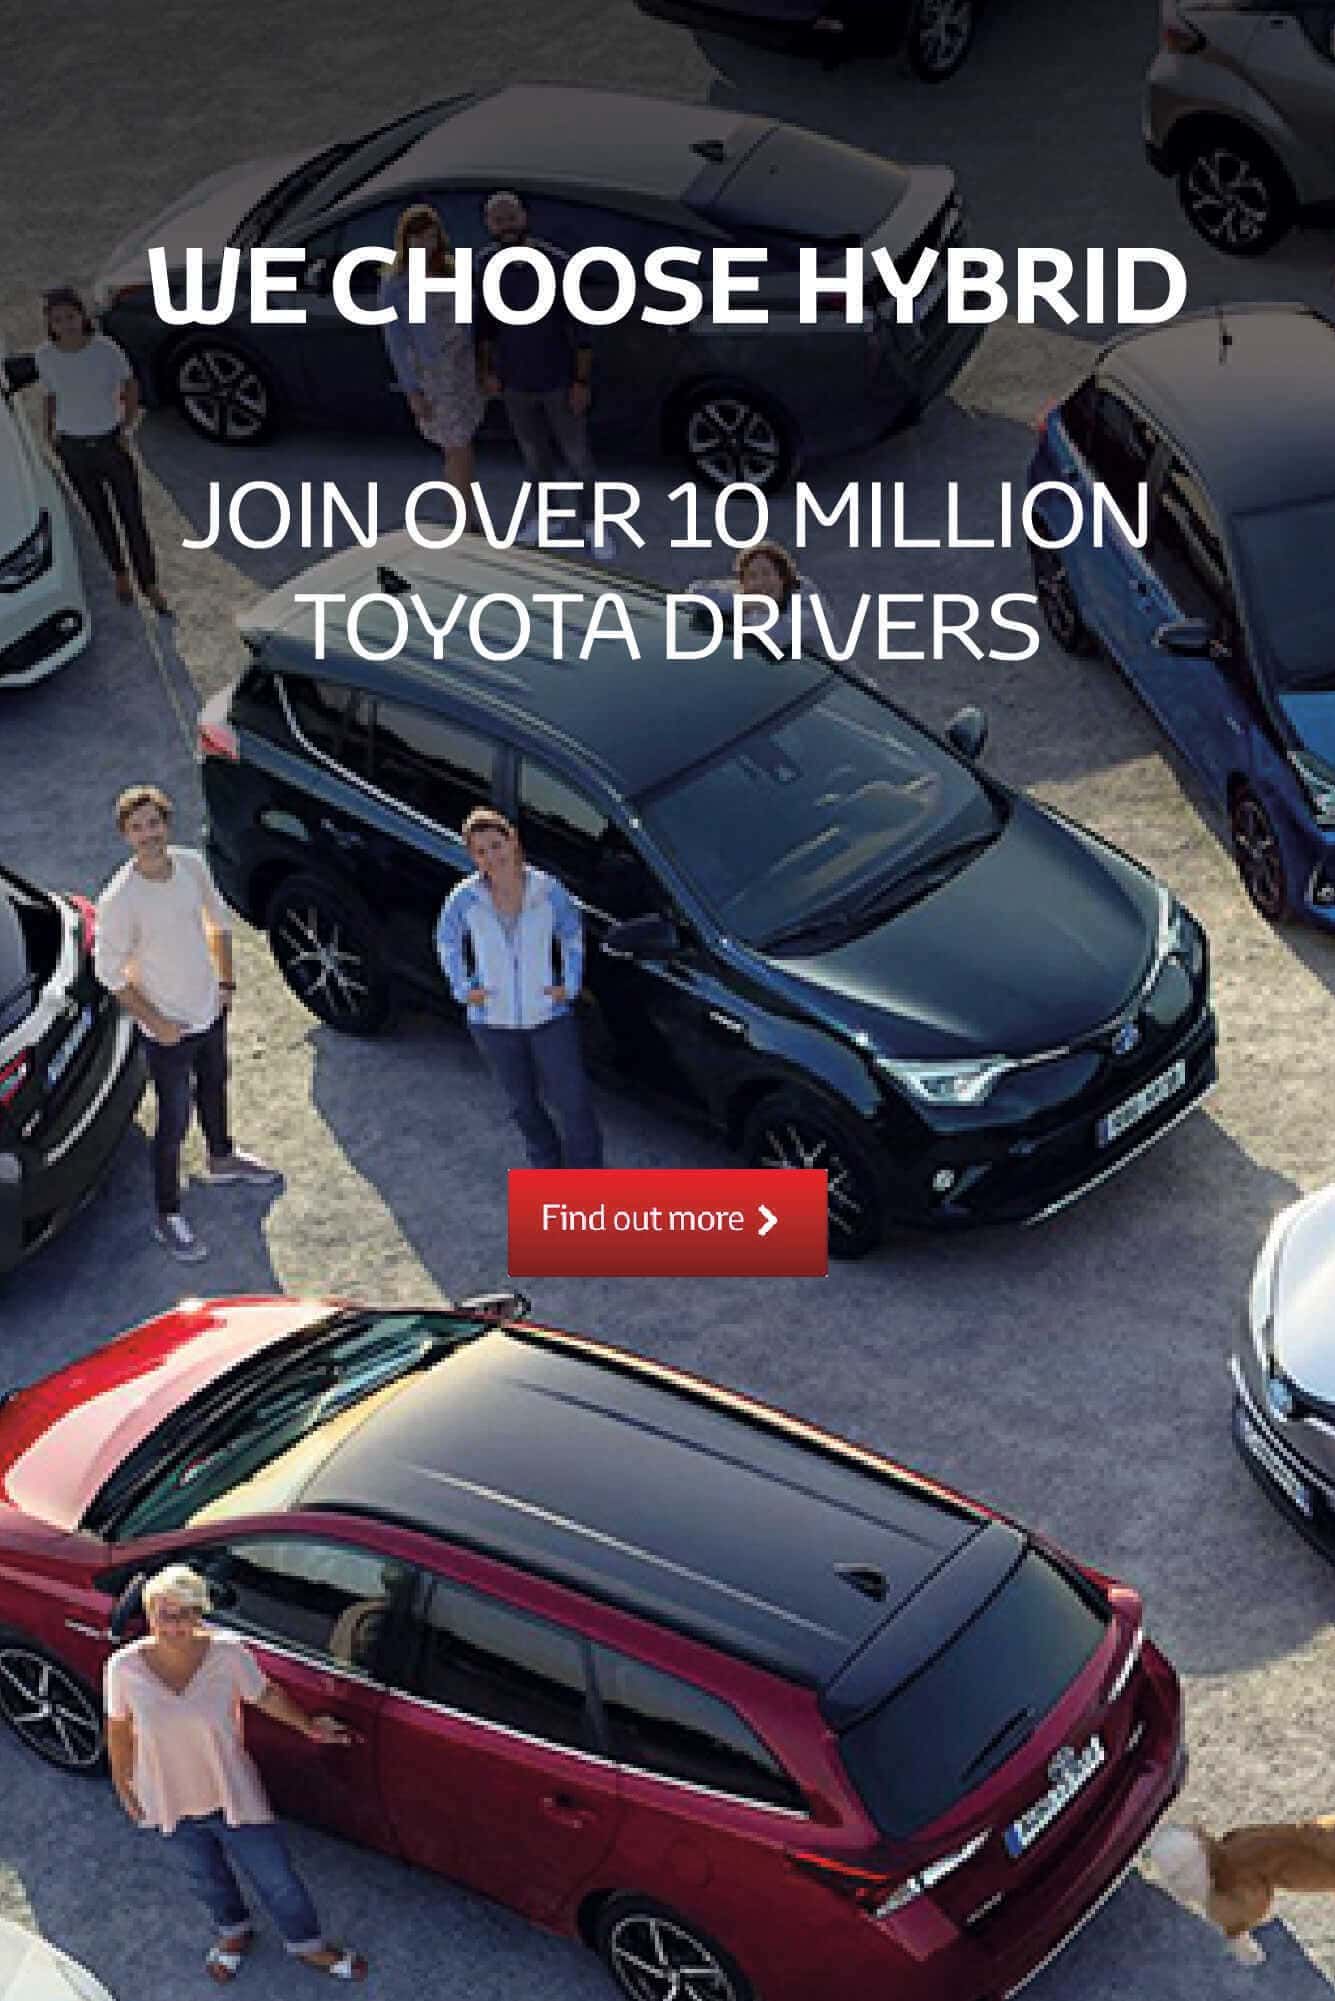 Toyota Yaris Deals New Cars For Sale Vertu The Landcruiser Owners Club View Topic Blue Plug We Choose Hybrid